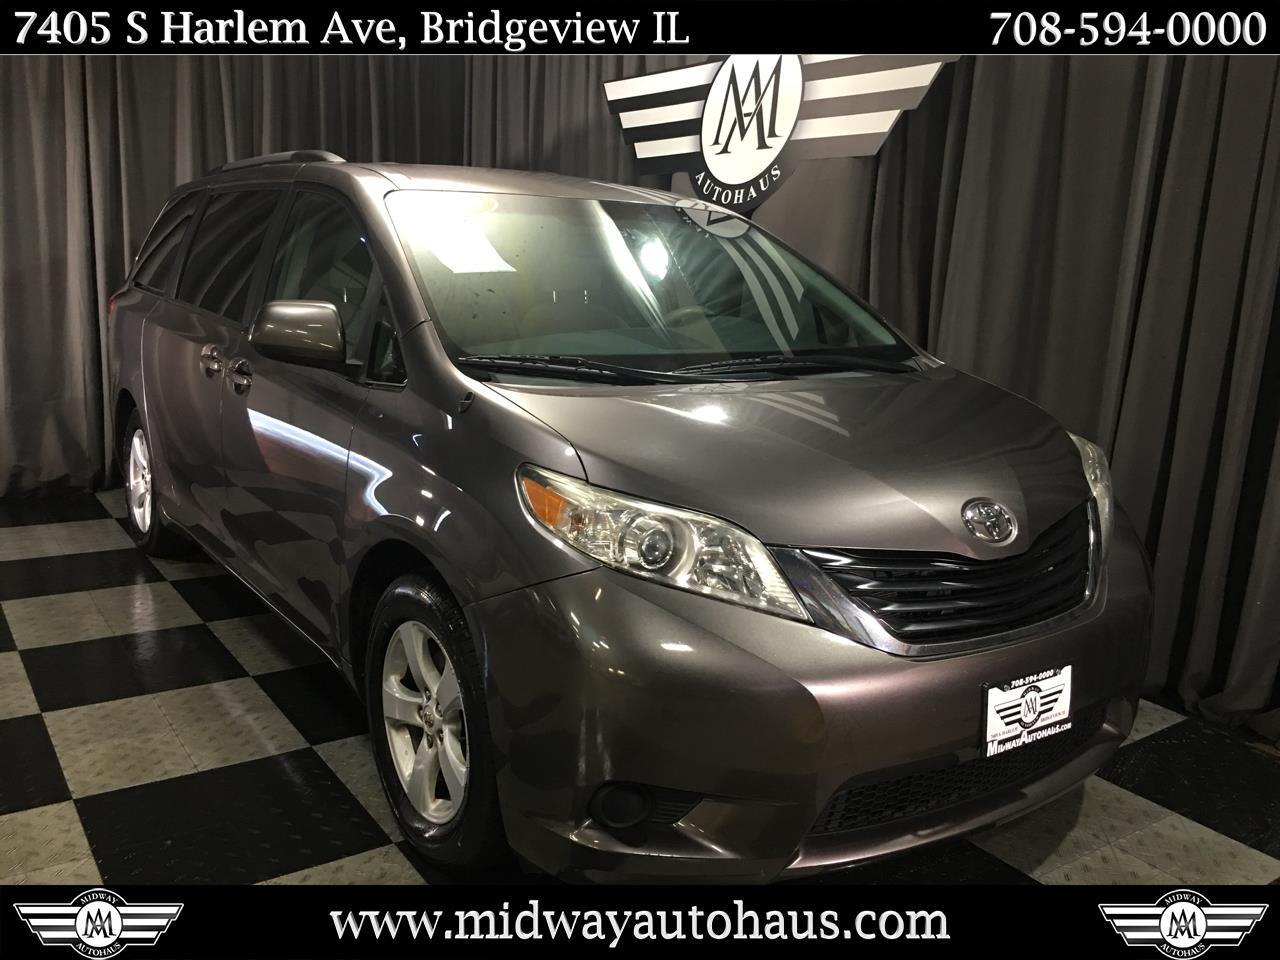 Pre-Owned 2011 Toyota Sienna 5dr 7-Pass Van V6 LE AAS FWD (Natl)